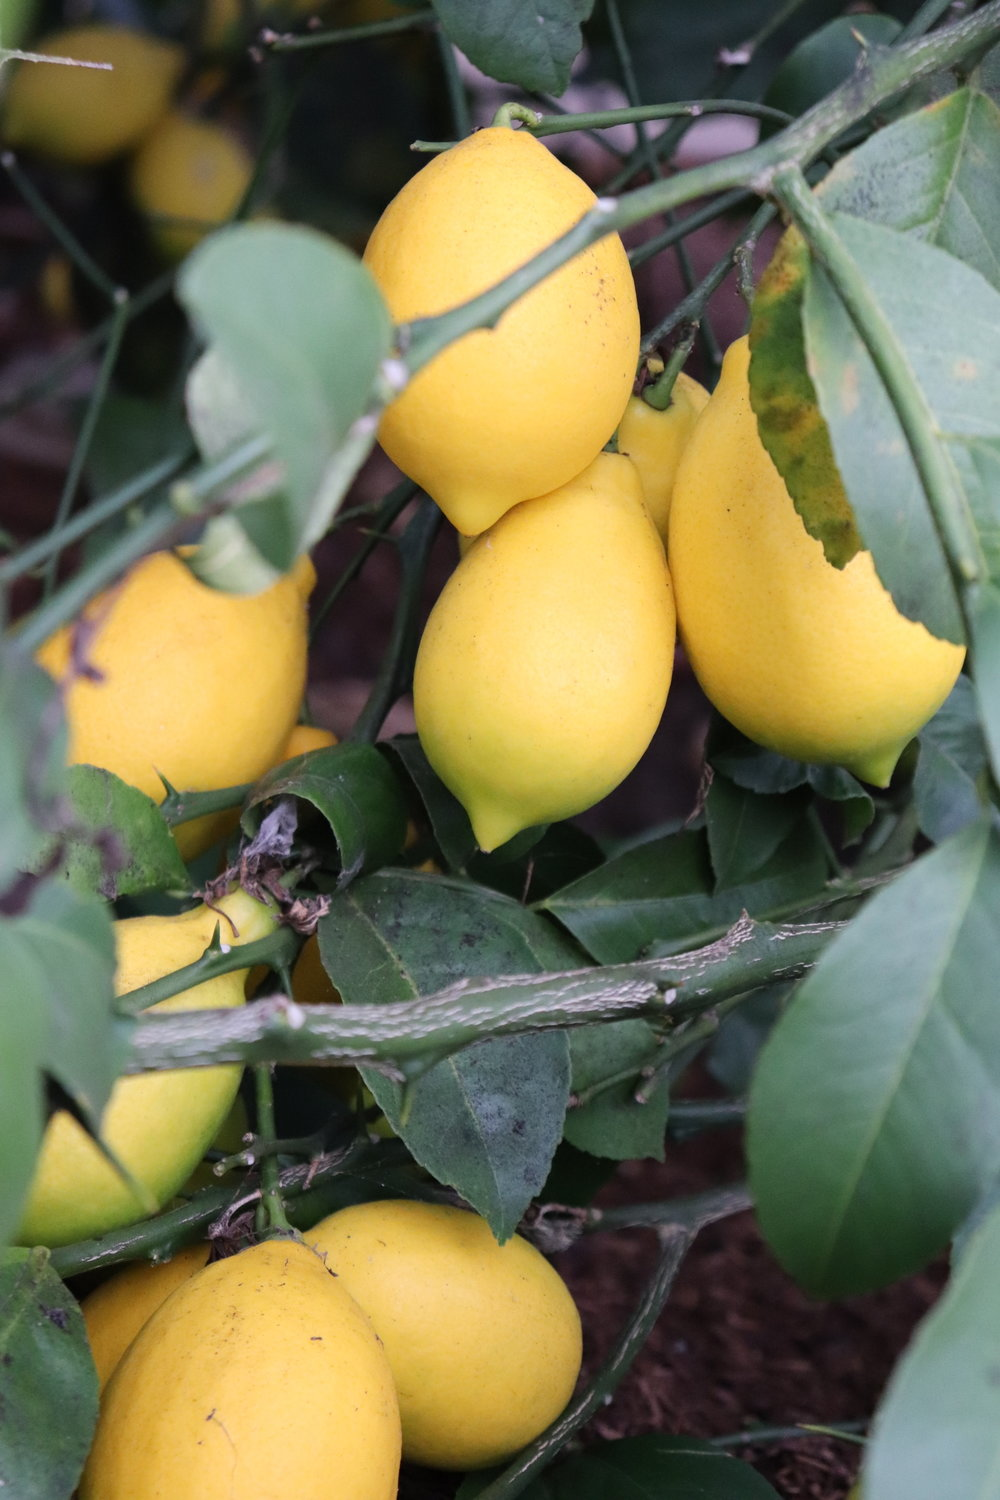 Gorgeous meyer lemons